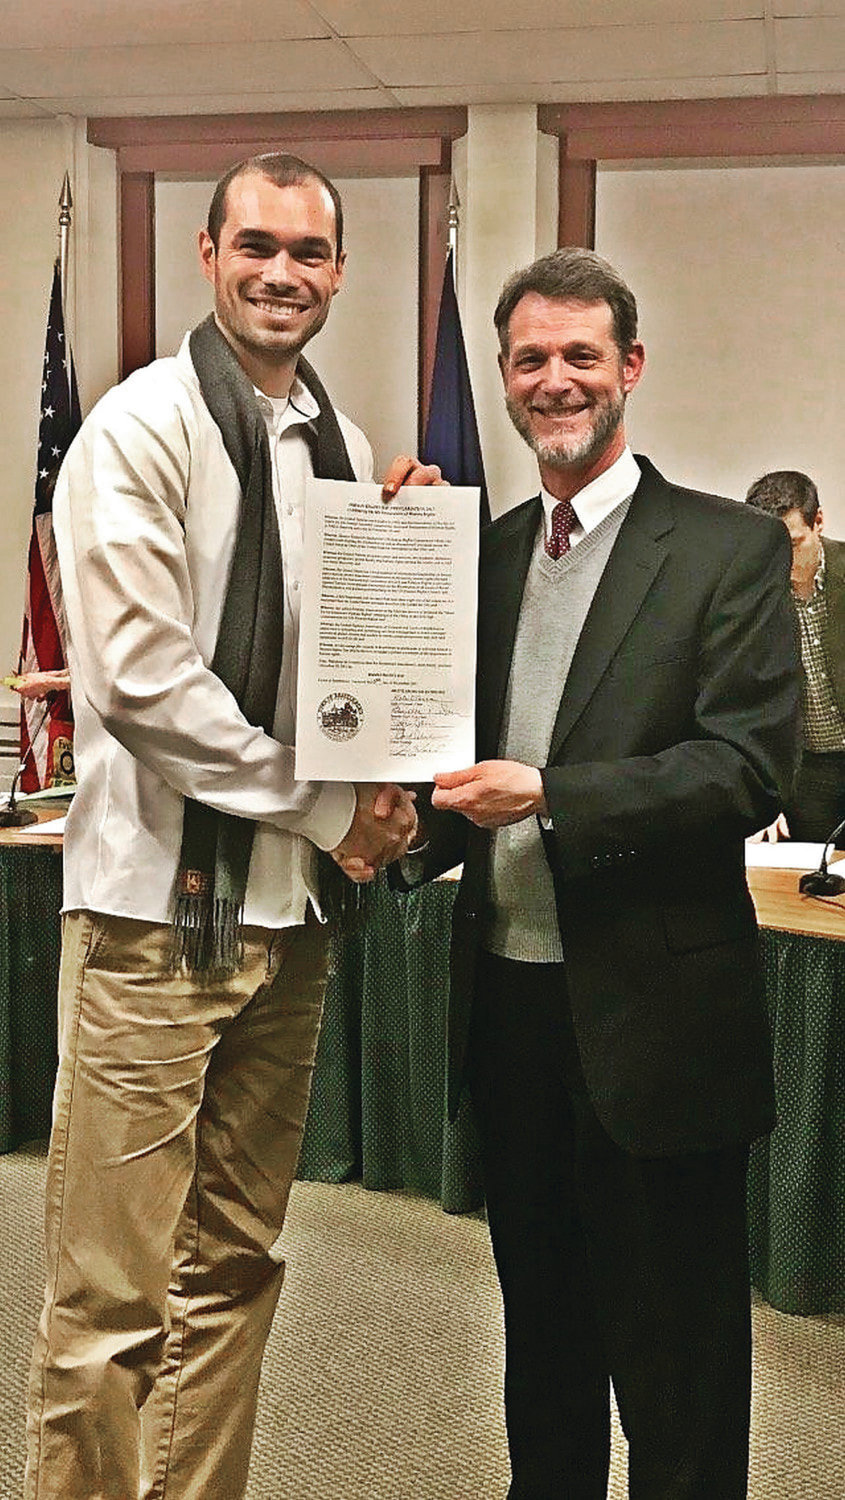 Justin Bibee, left, and Peter Elwell, town manager of Brattleboro, Vermont, hold a proclamation declaring Human Rights Day in this 2017 photo.